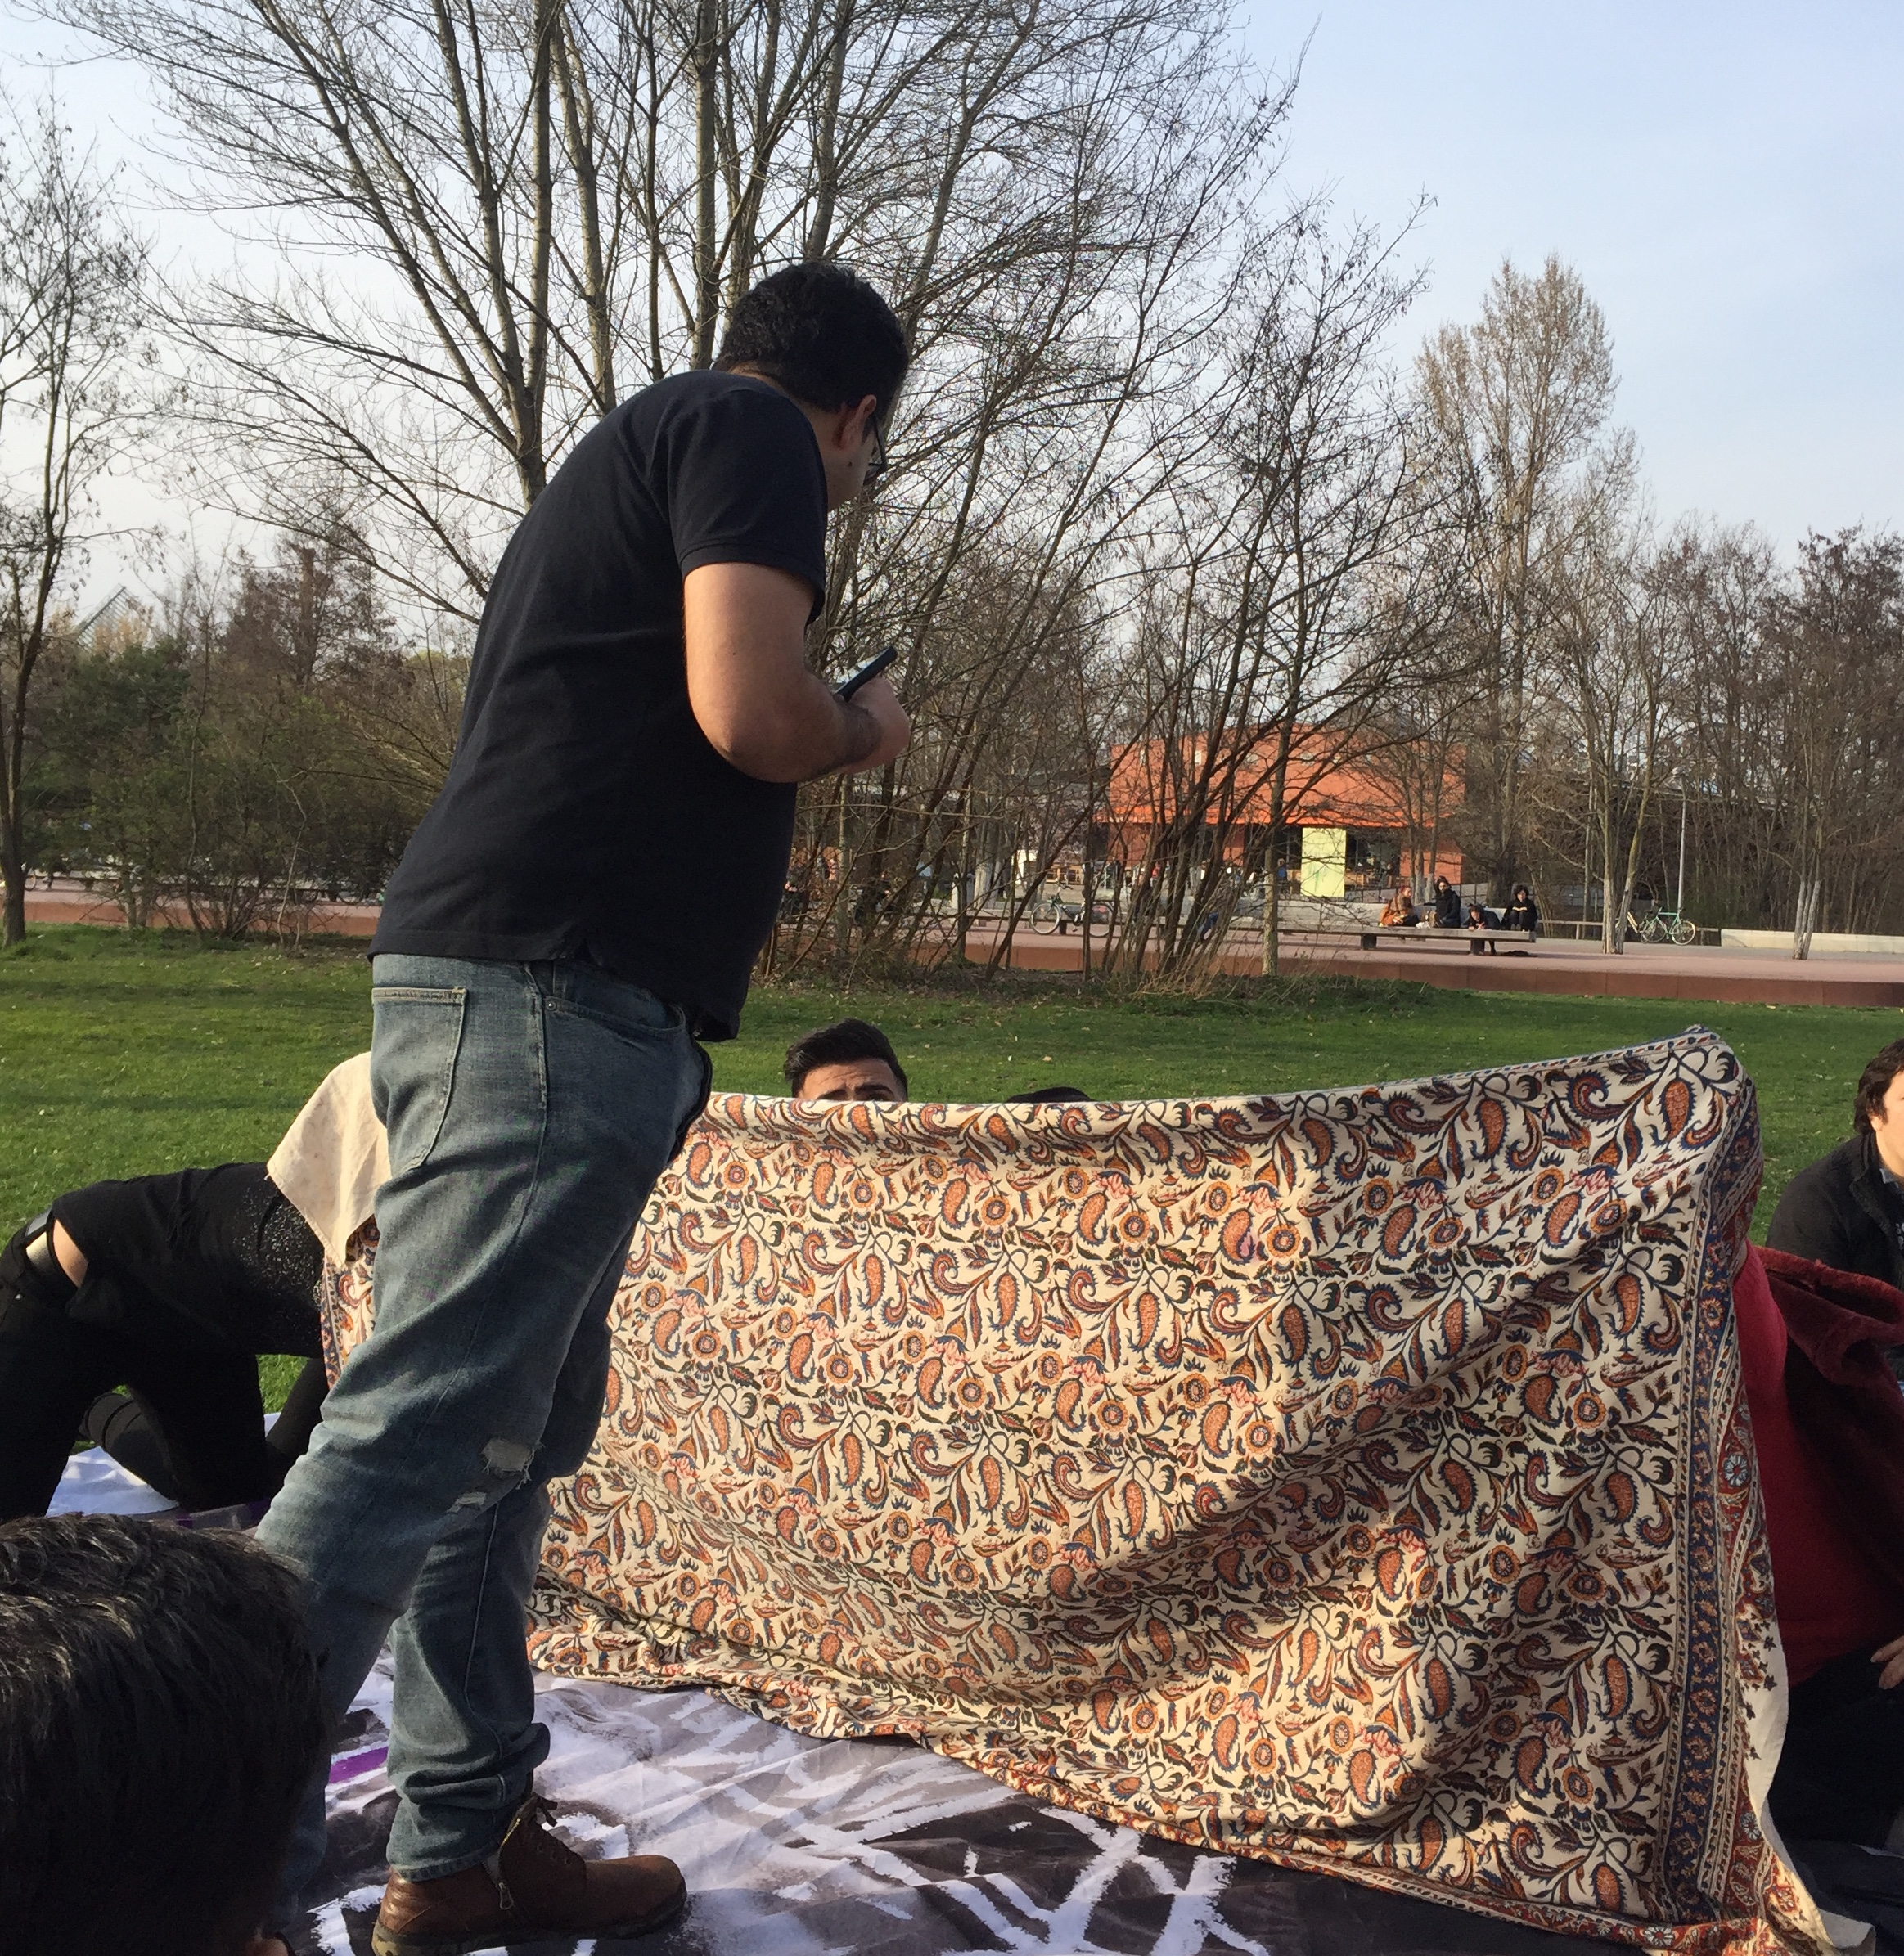 Playing traditional guessing game during park gathering. One team hides behind the blanket while they pass a ring to someone's hand. The other team then has to guess who has it.